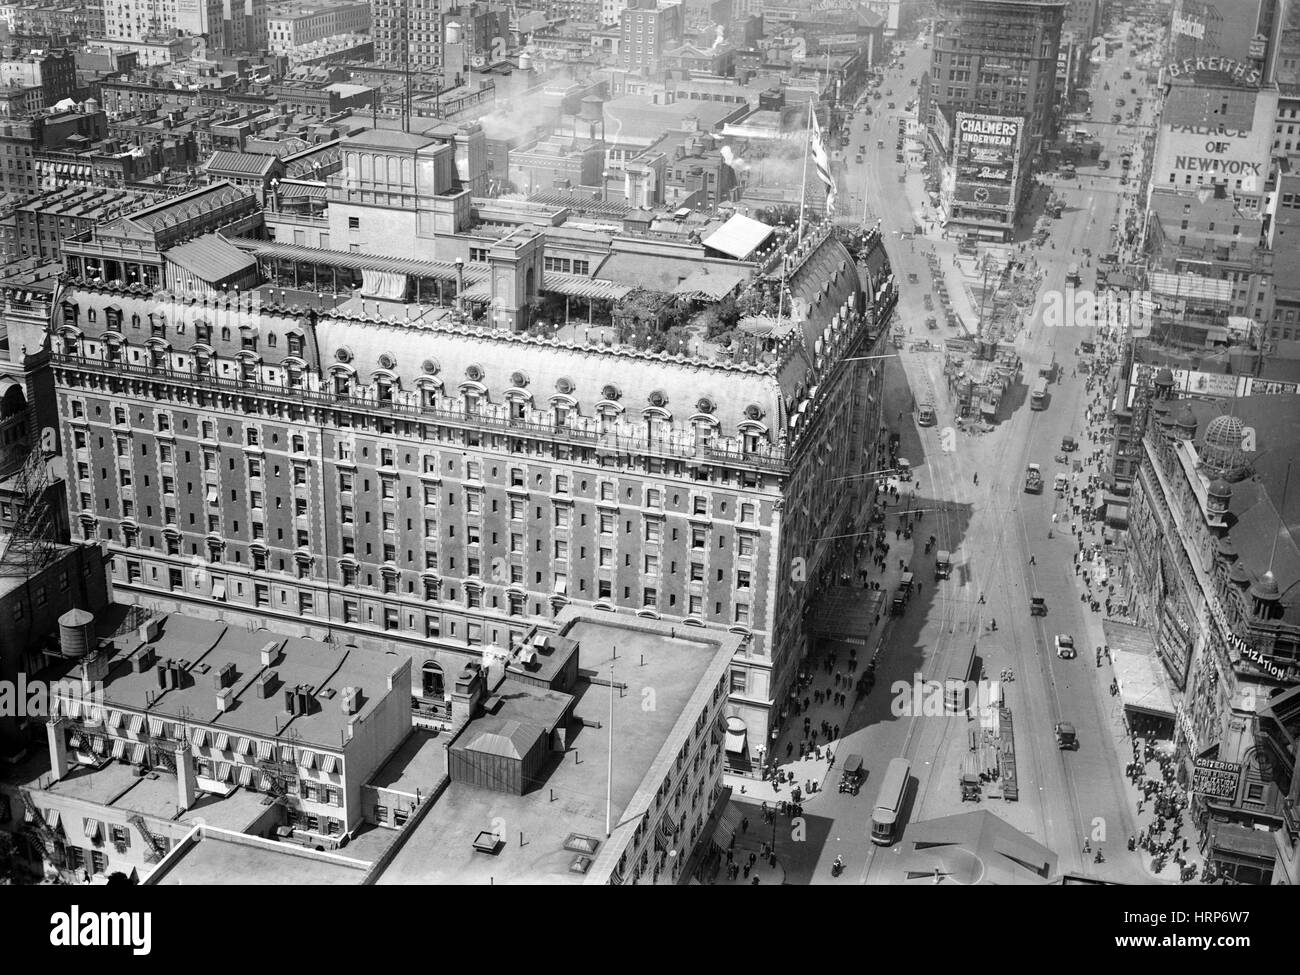 NYC, Times Square, Hotel Astor, 1915-20 - Stock Image